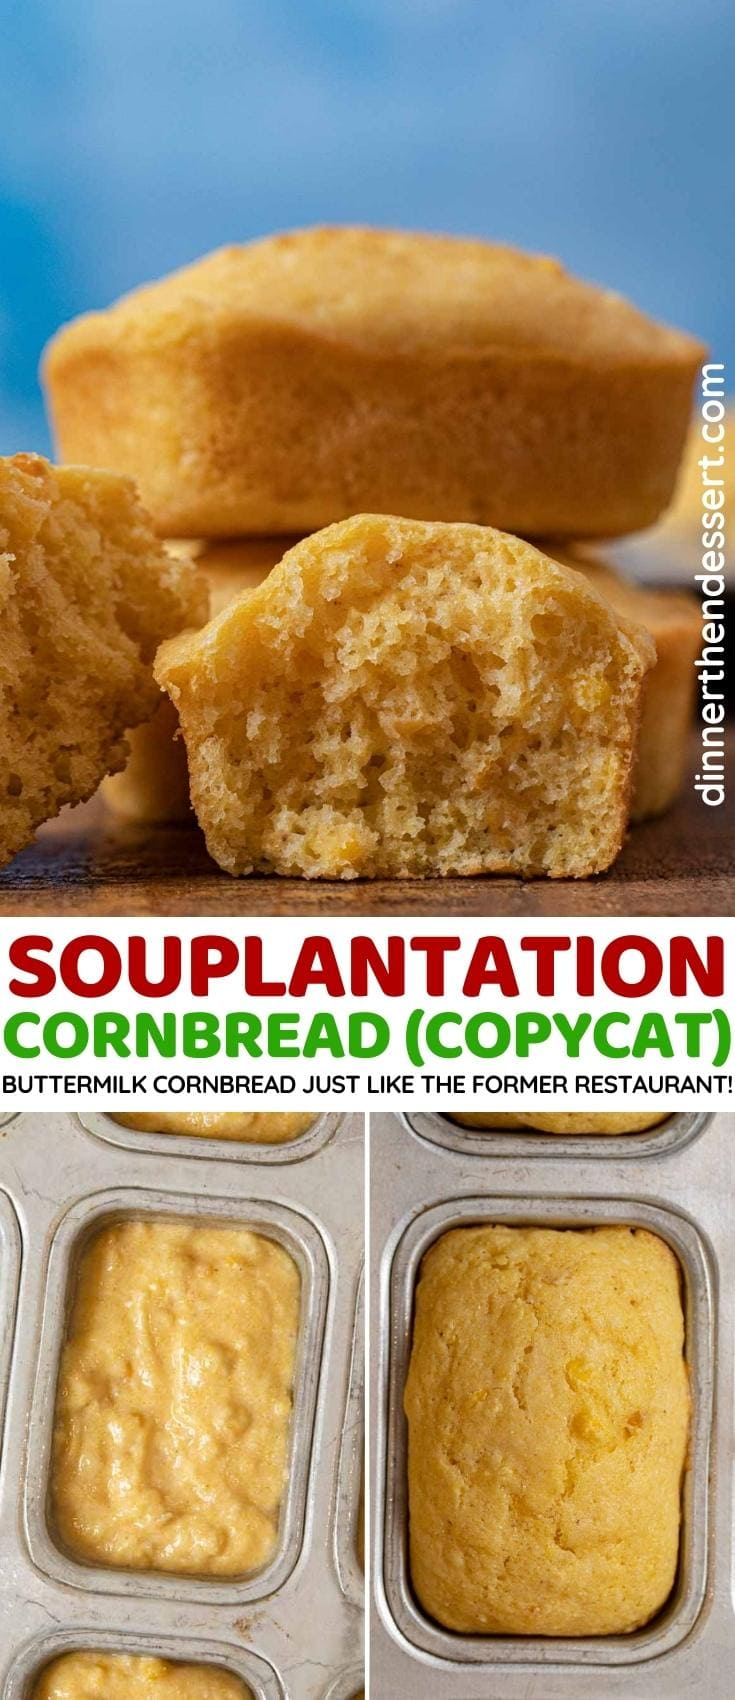 Souplantation Cornbread collage